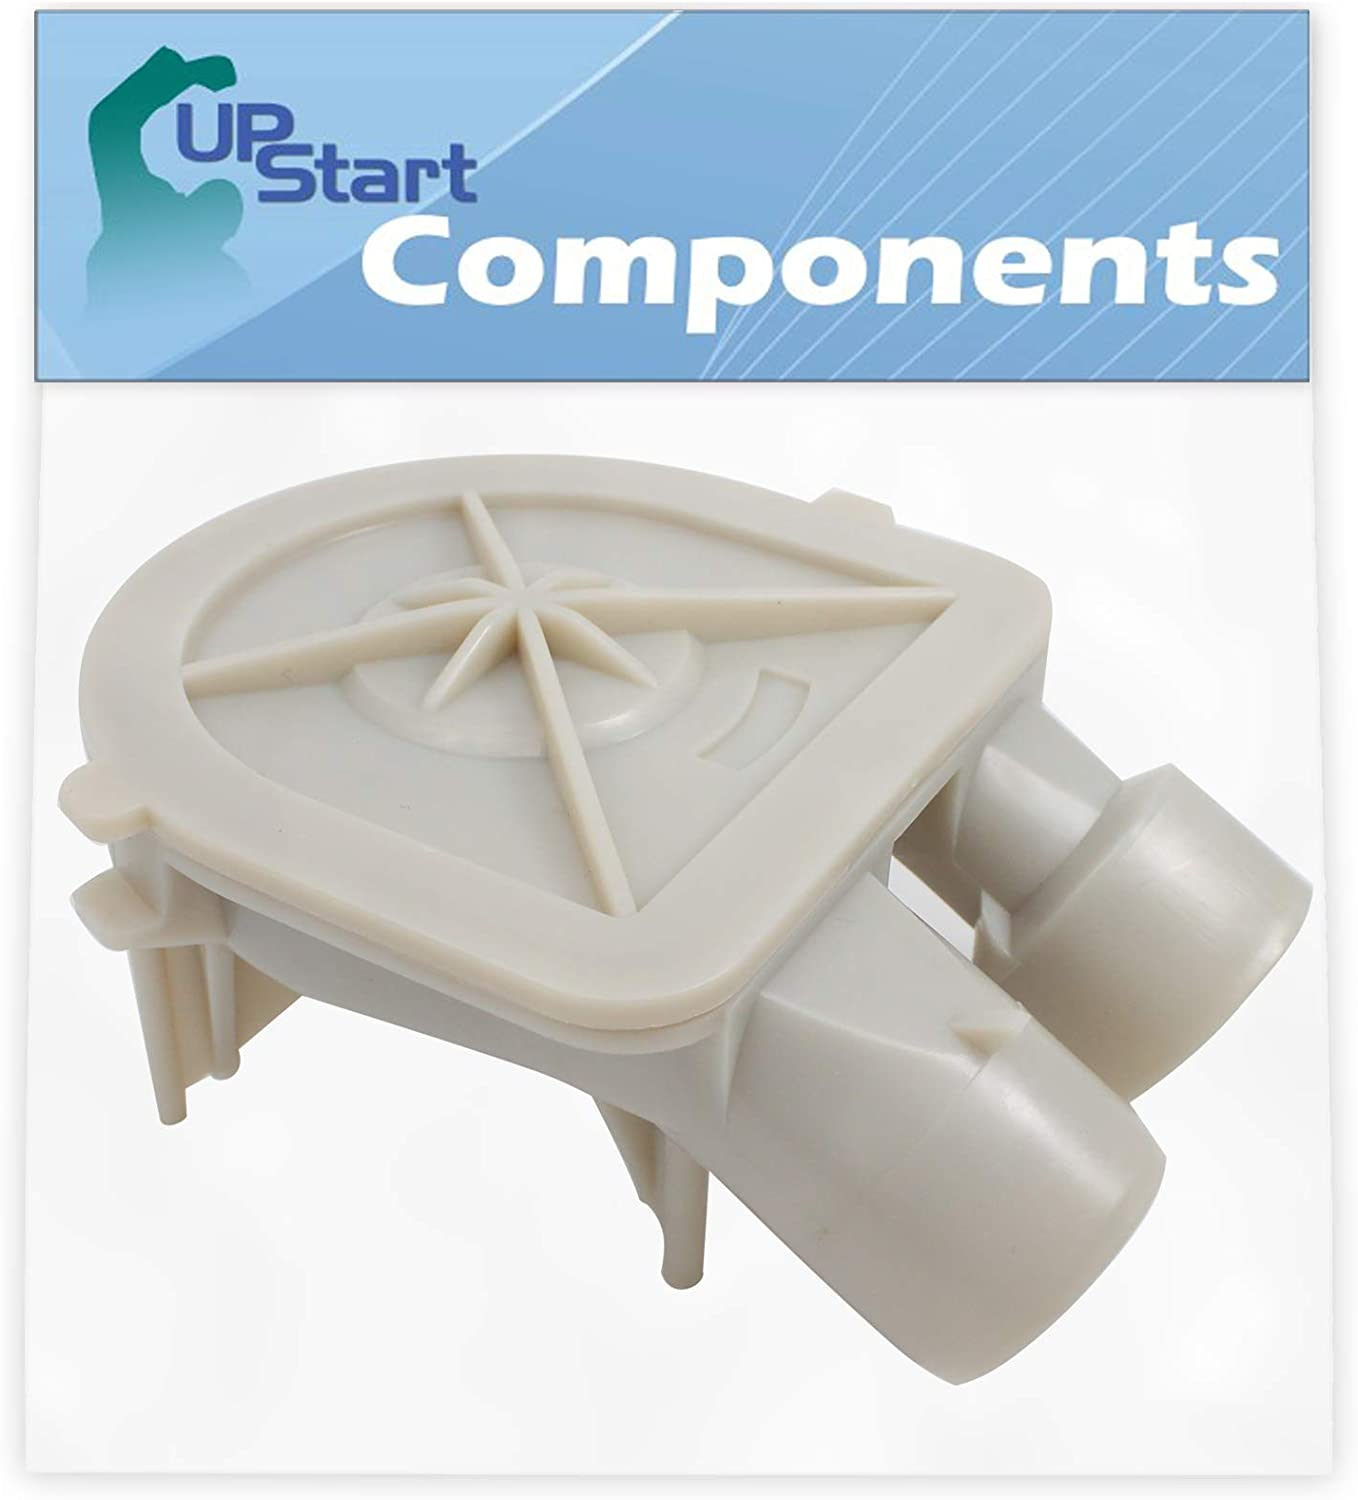 3363892 Washing Machine Pump Replacement for Whirlpool LSQ9610JQ0 Washer - Compatible with WP3363892 Washer Drain Pump